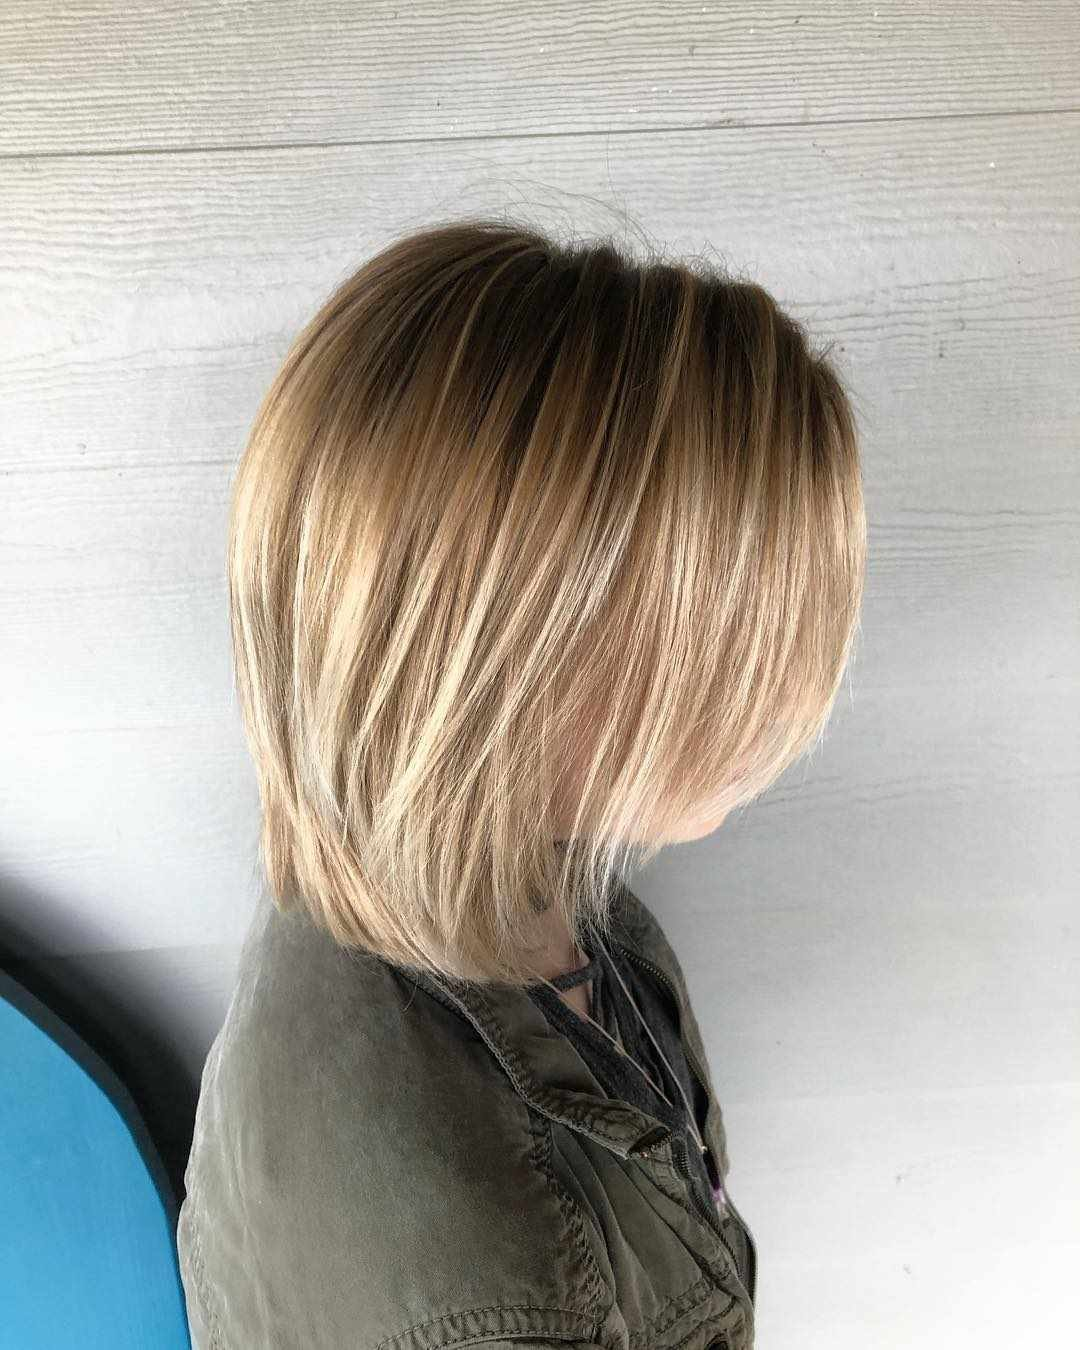 The Best 50 Popular Short Haircuts For Women In 2019 » Hairstyles 2019 Pictures